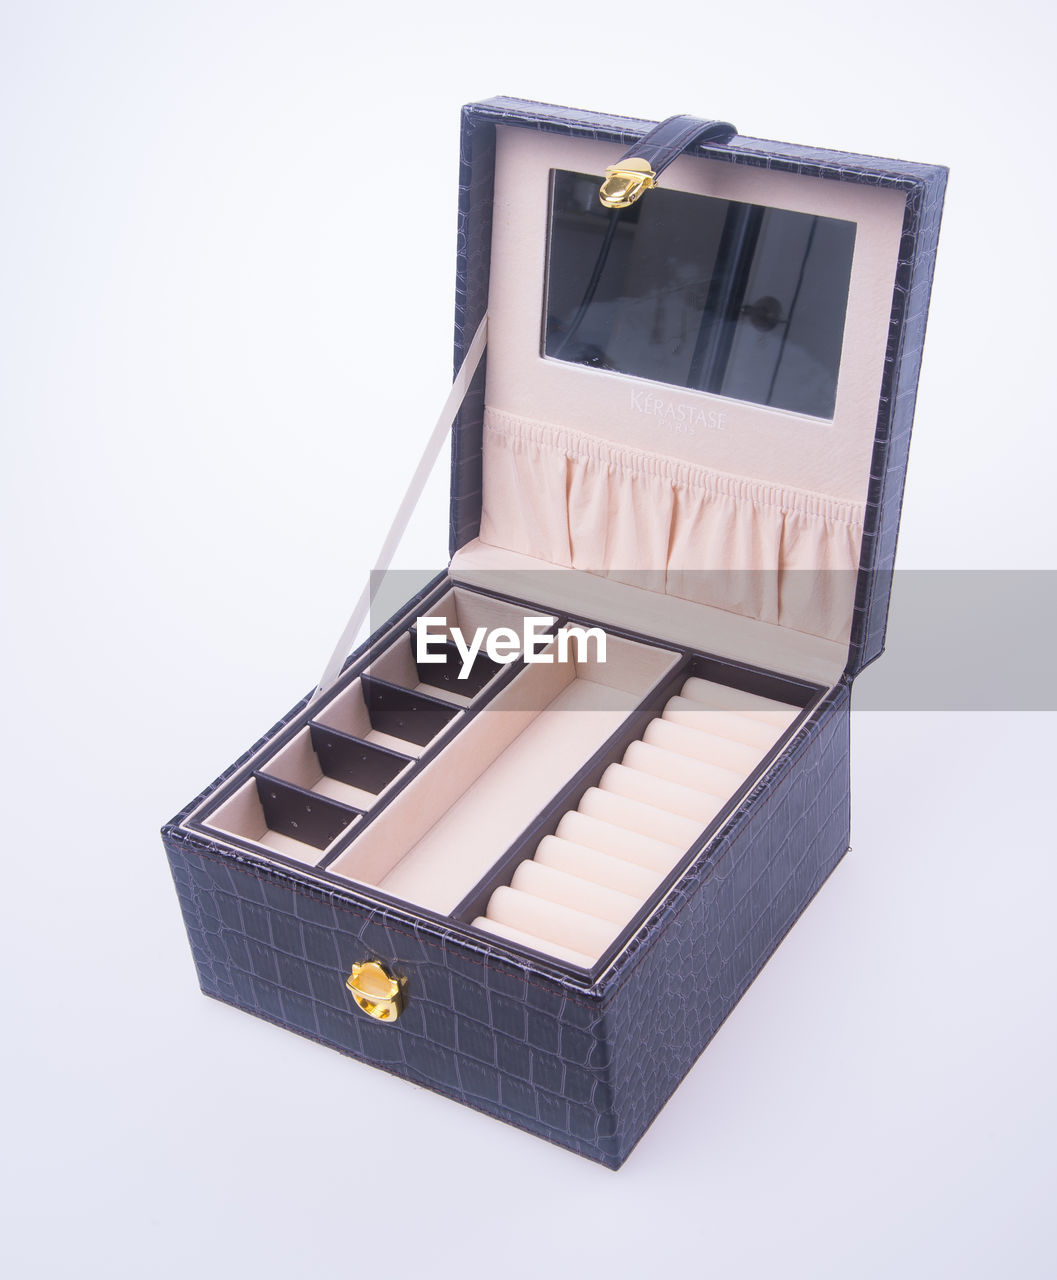 High angle view of empty jewelry box on gray background